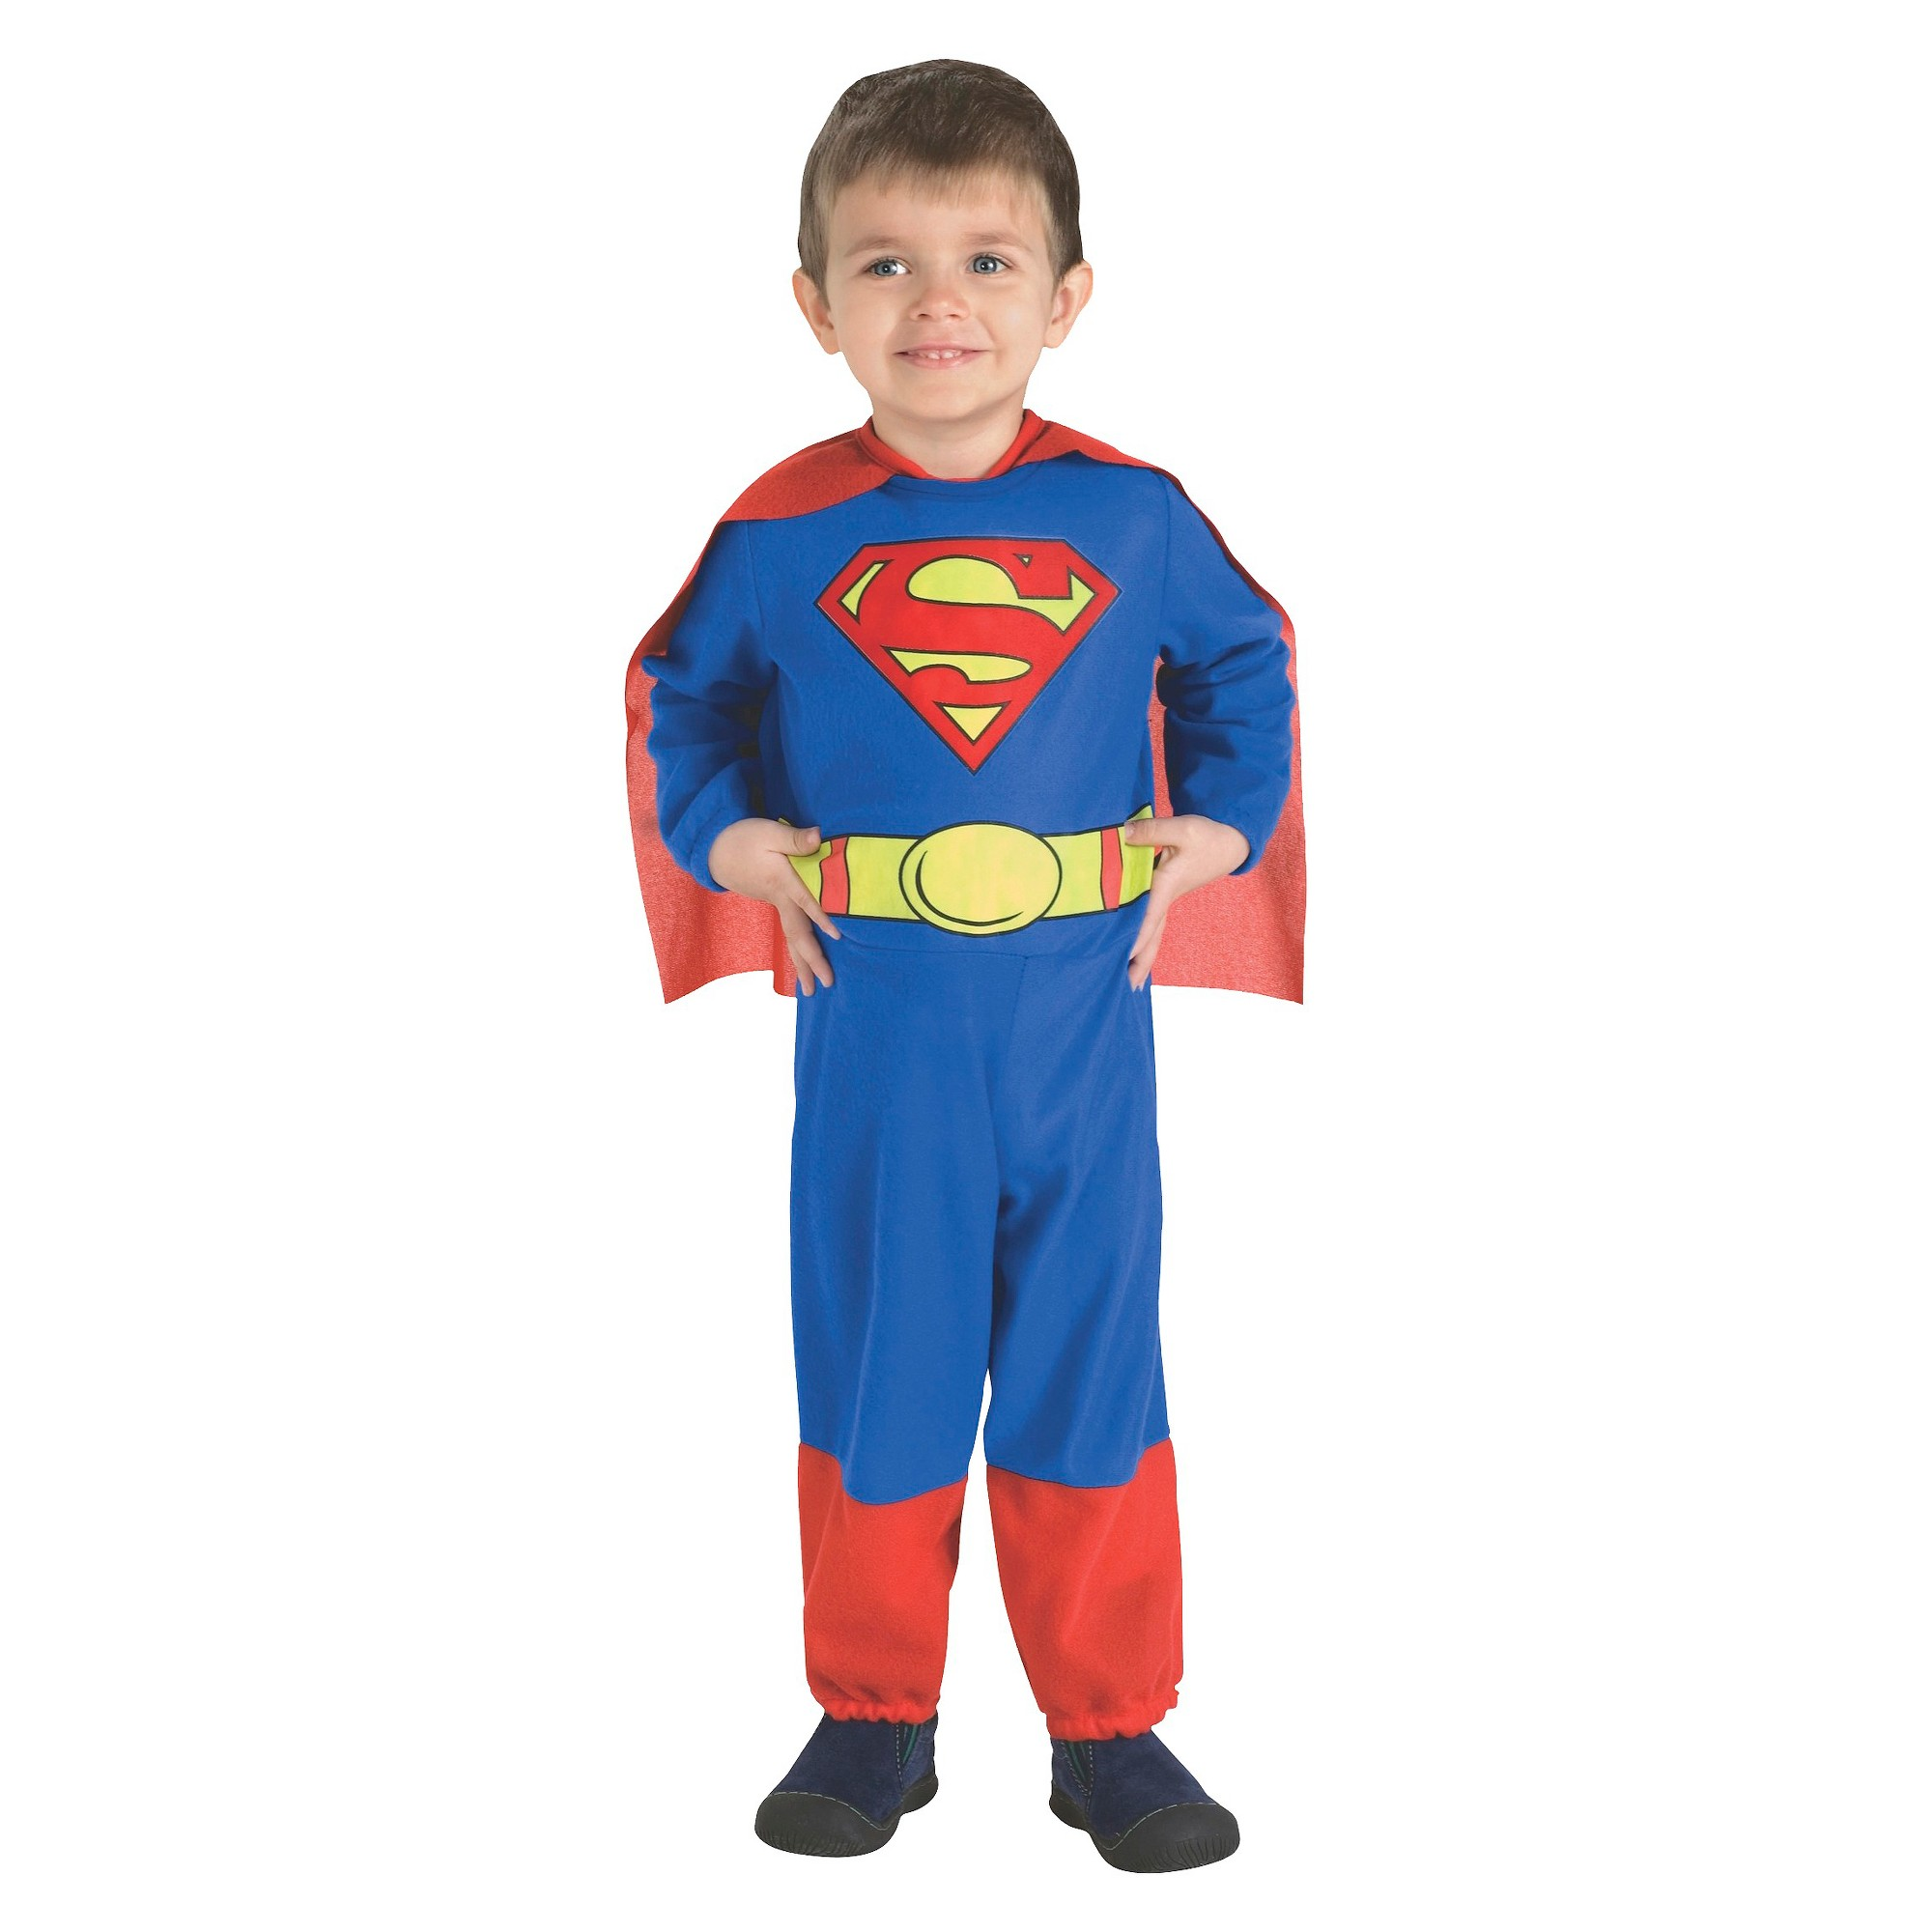 Halloween Superman Toddler Costume 2T-4T, Men's, Clear